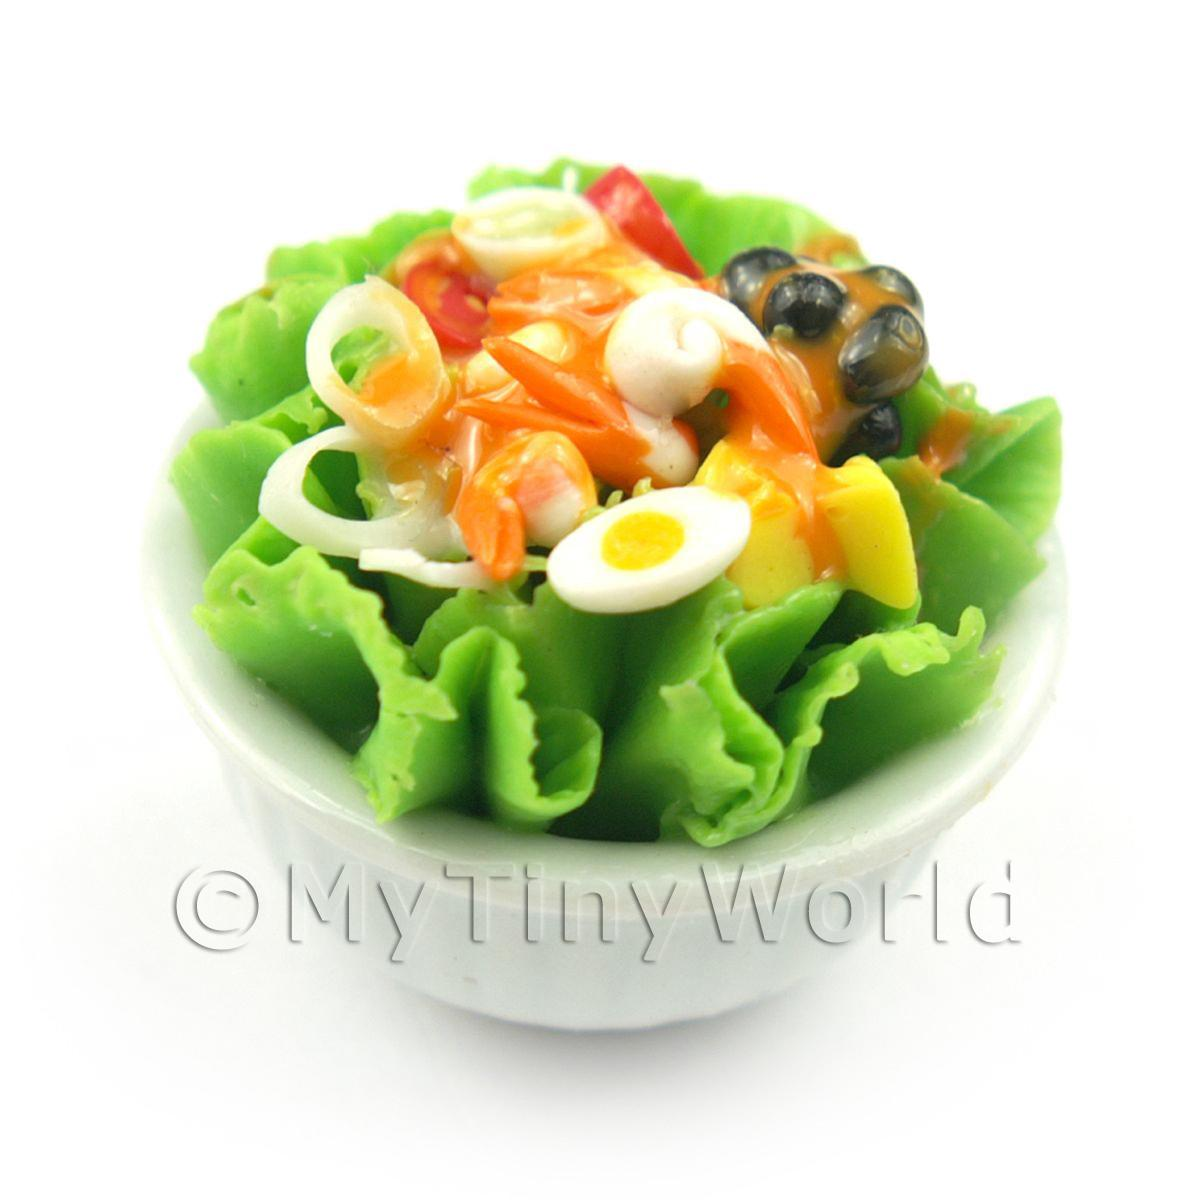 Dolls House Miniature Bowl of Mixed Salad Style 2